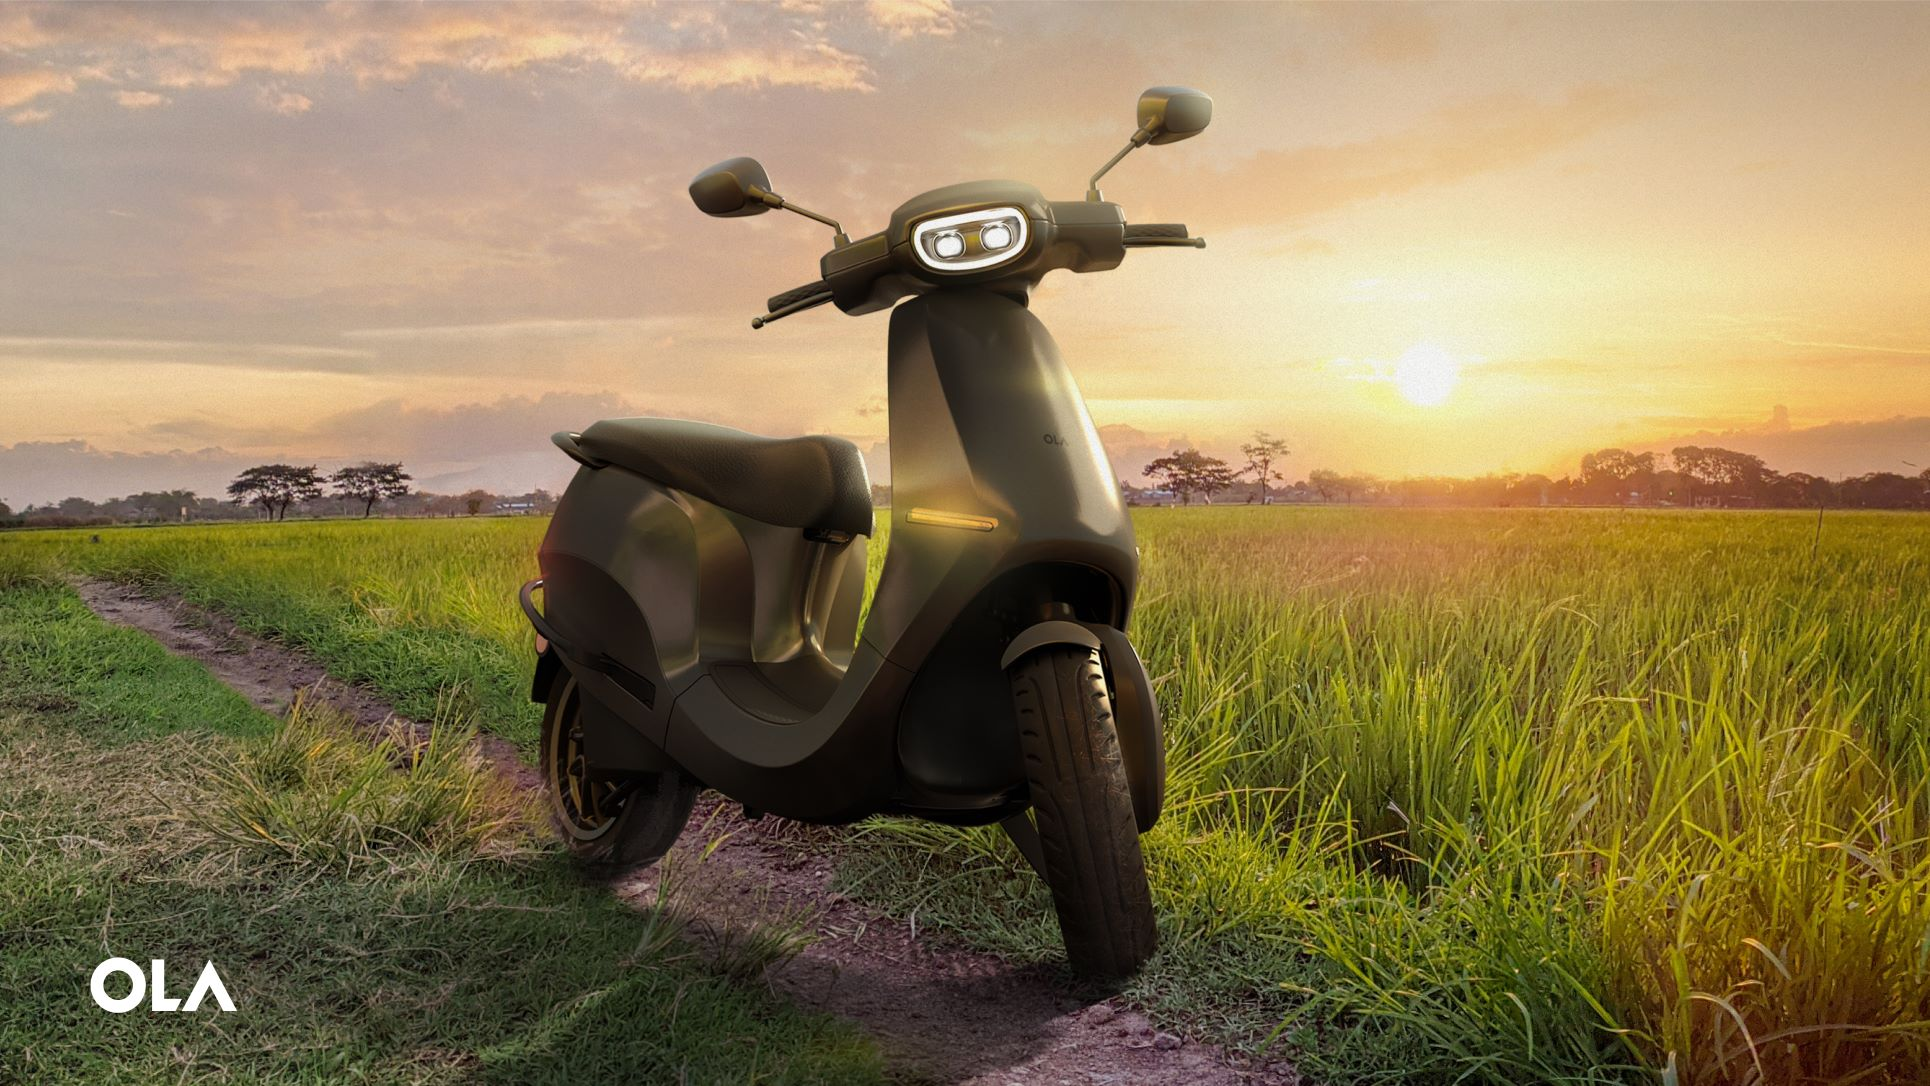 OLA SCOOTER GETS 100,000 RESERVATIONS IN A DAY